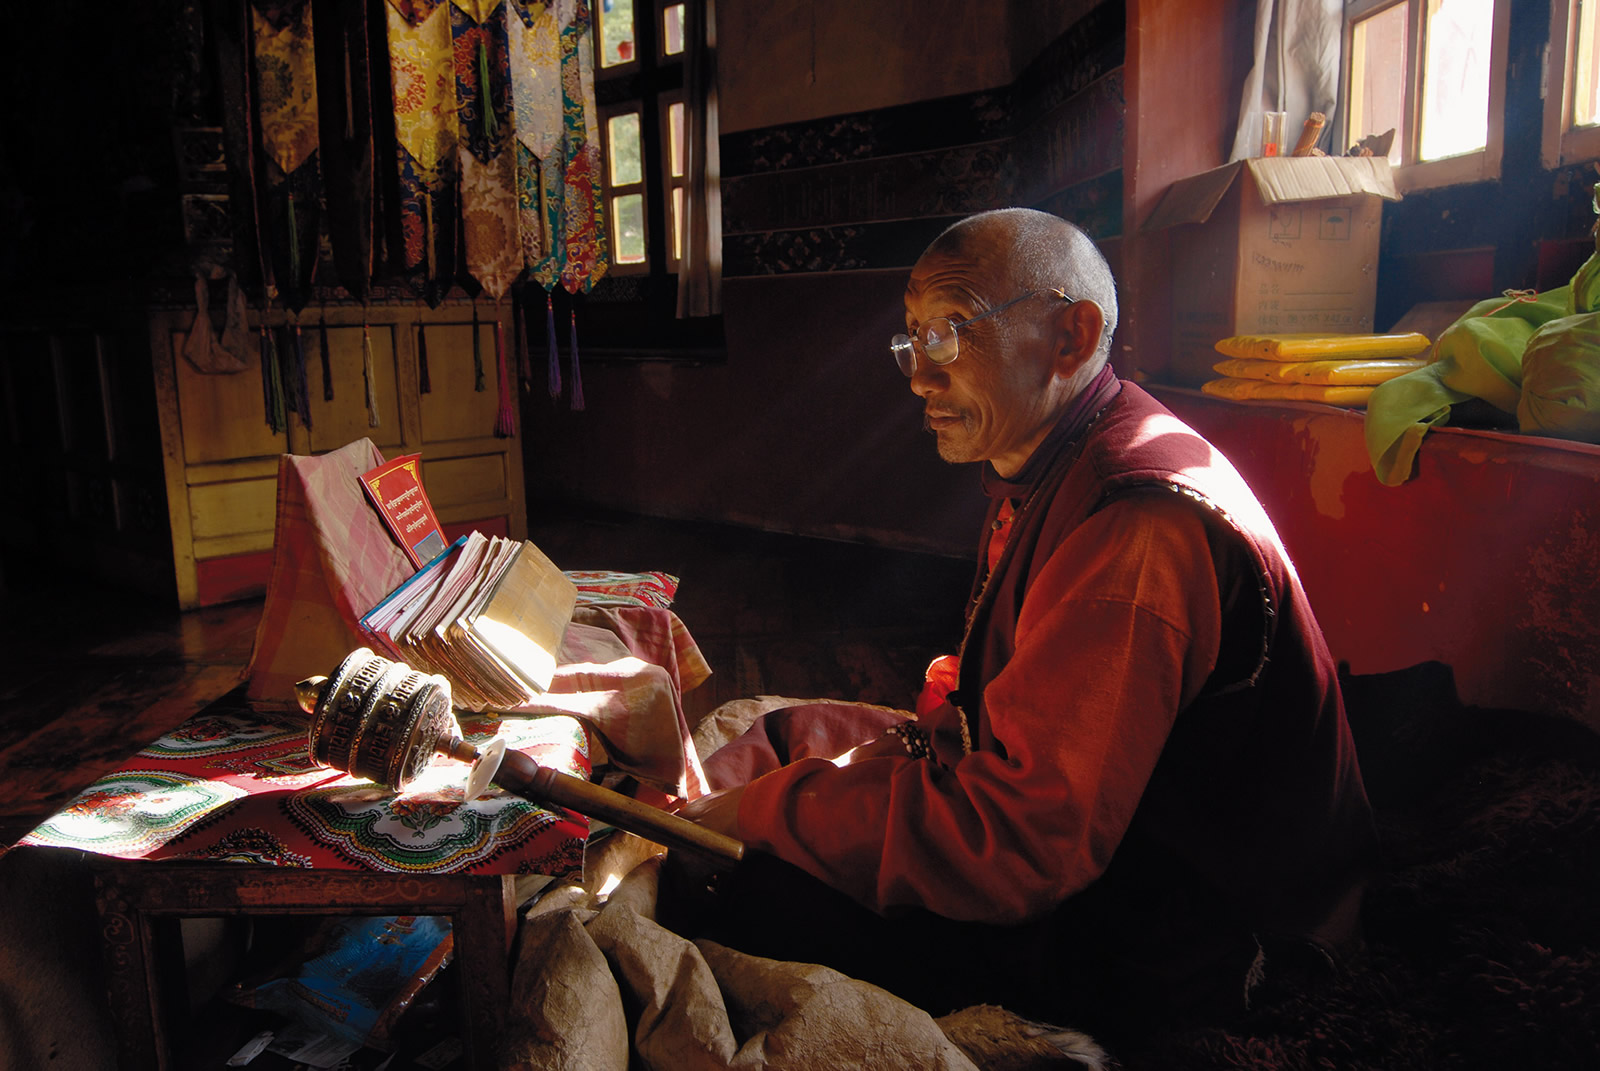 Vajrayana buddhism homosexuality and christianity